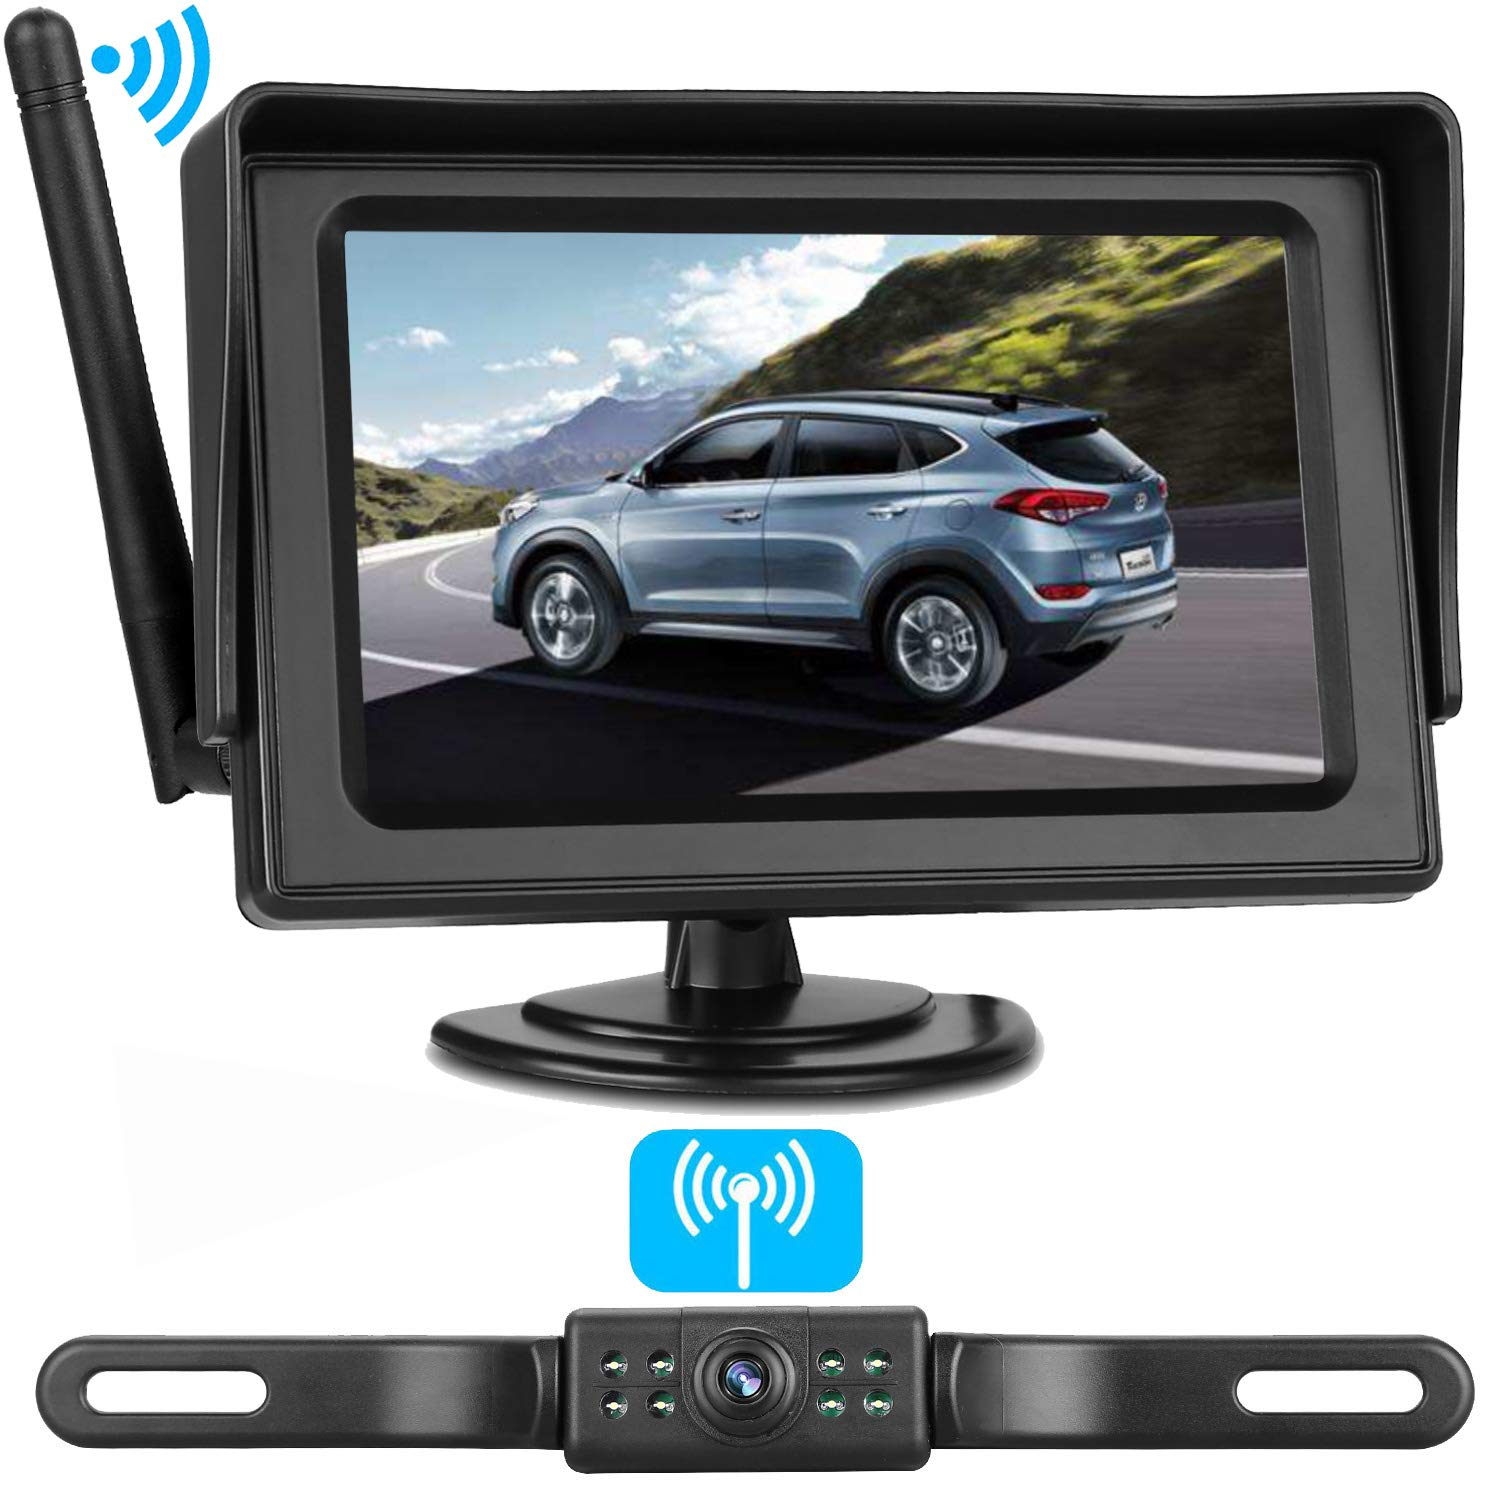 ZSMJ Wireless Backup Camera and Monitor Kit 9V-24V Rear View/Front View System For Car/SUV/Minivan Night Vision Waterproof Camera On/Off Guide Lines